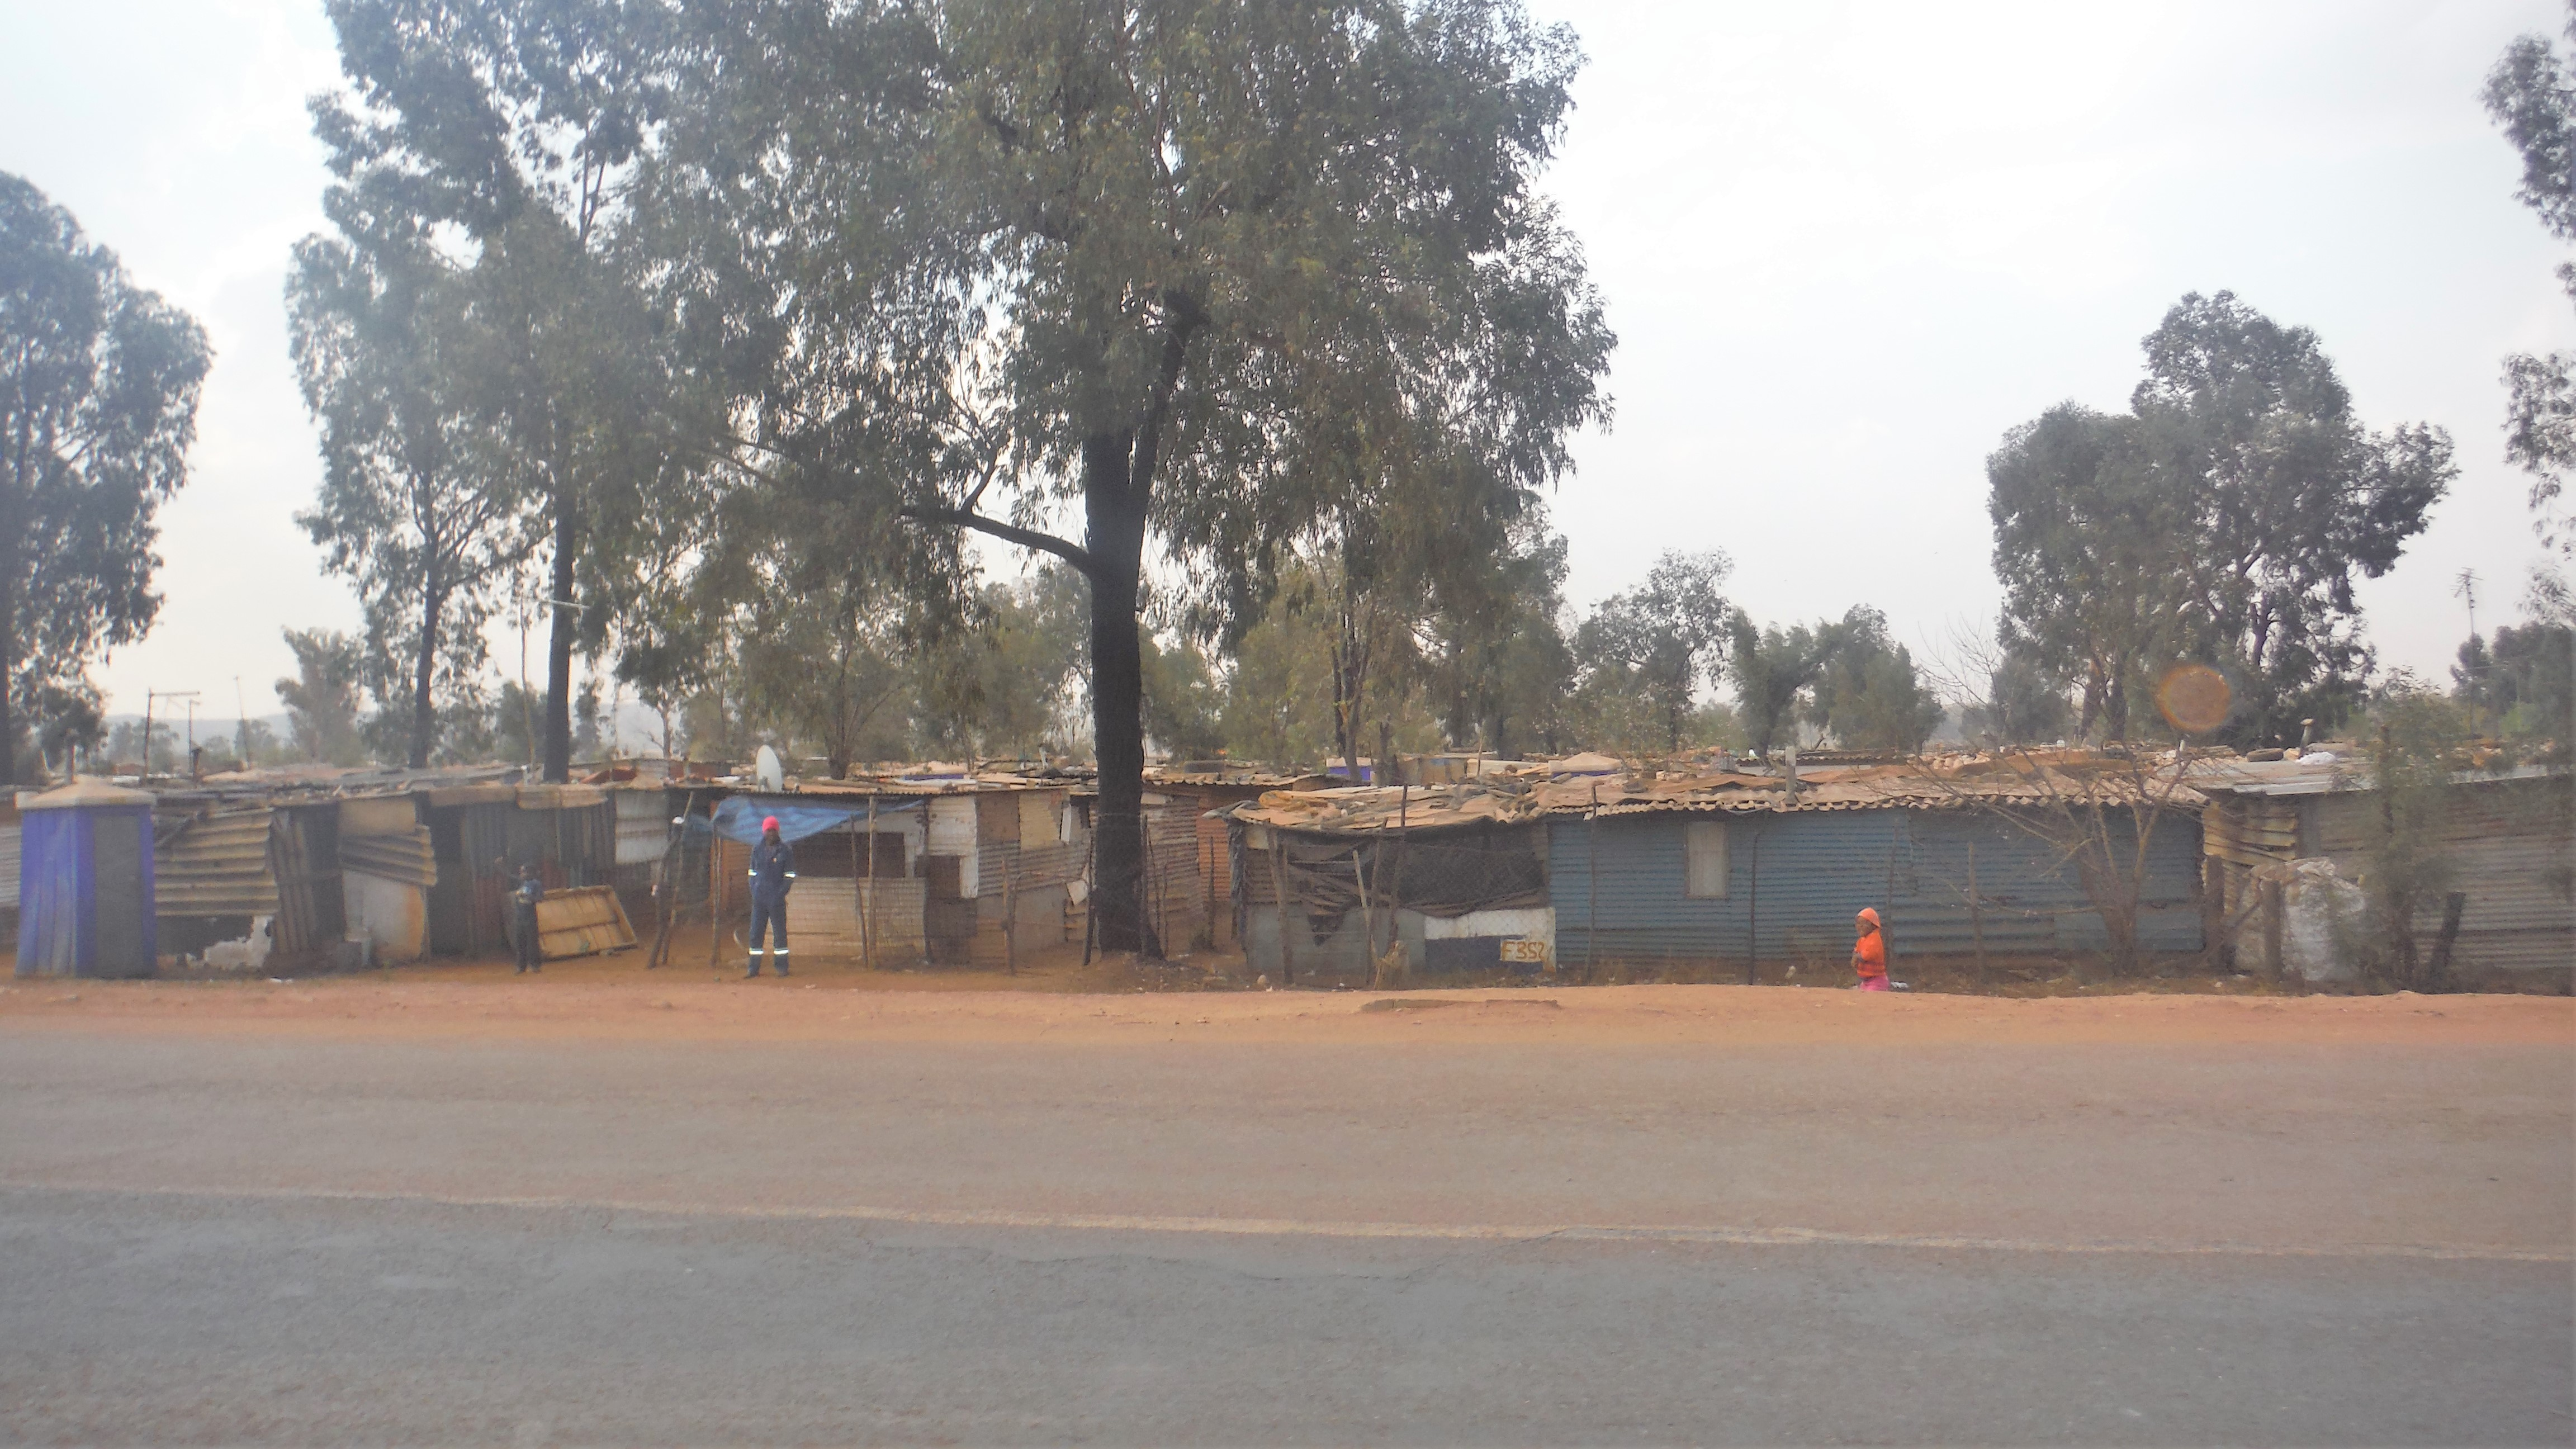 One of the Shanty towns